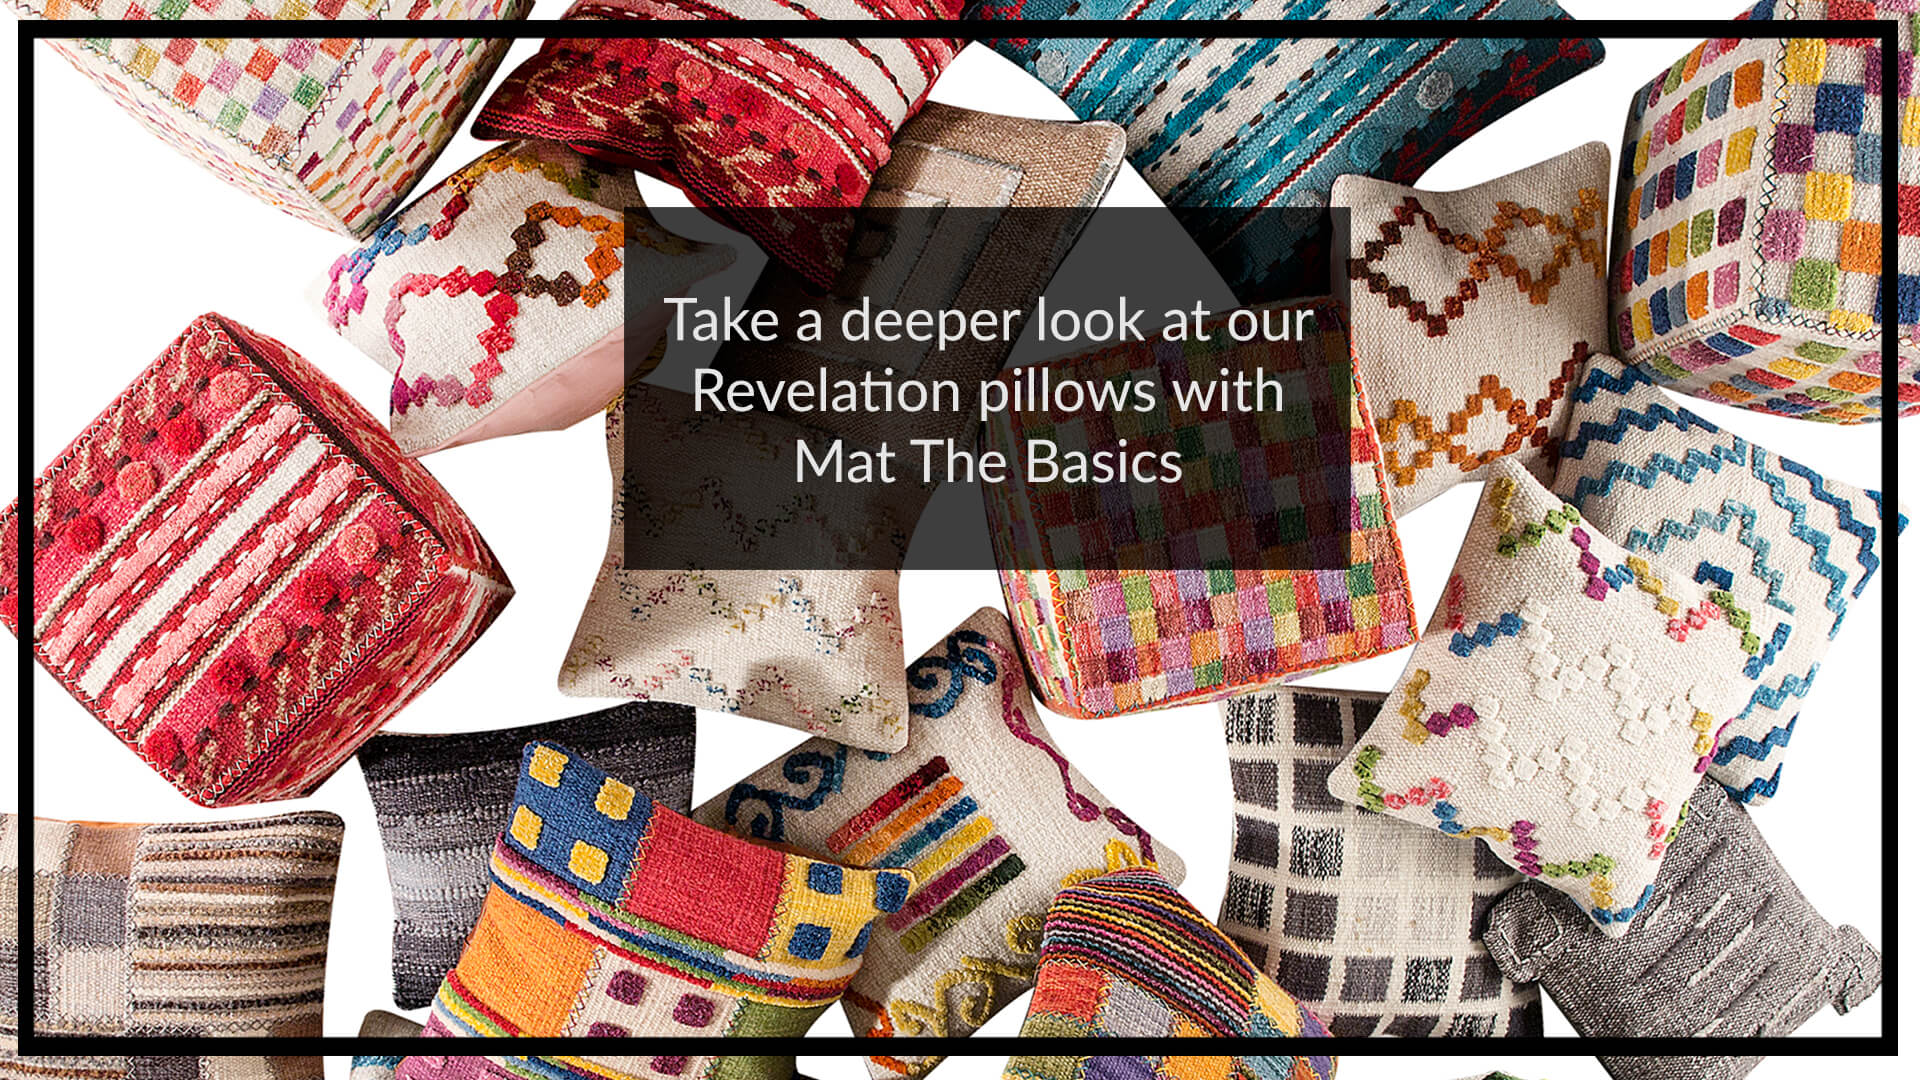 Take-a-deeper-look-at-our-Revelation-pillows-with-Mat-the-Basics